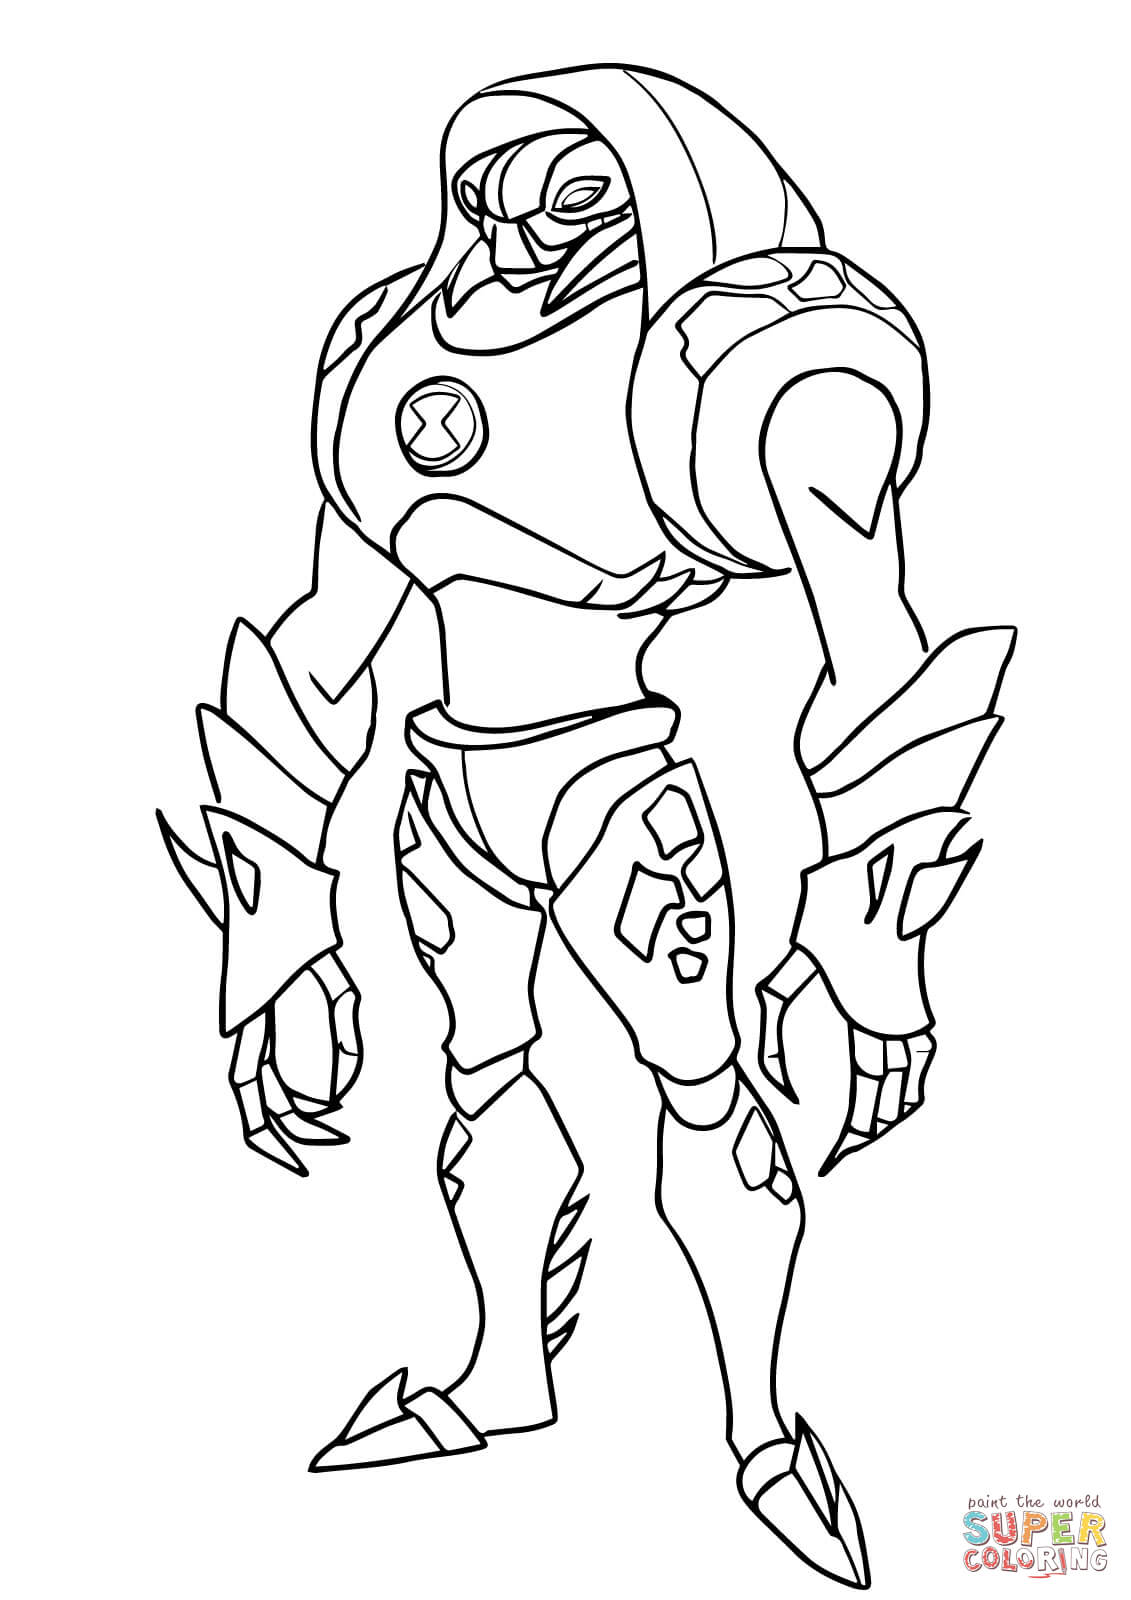 Ben 10 Water Hazard Coloring Pages Sketch Coloring Page  Coloring